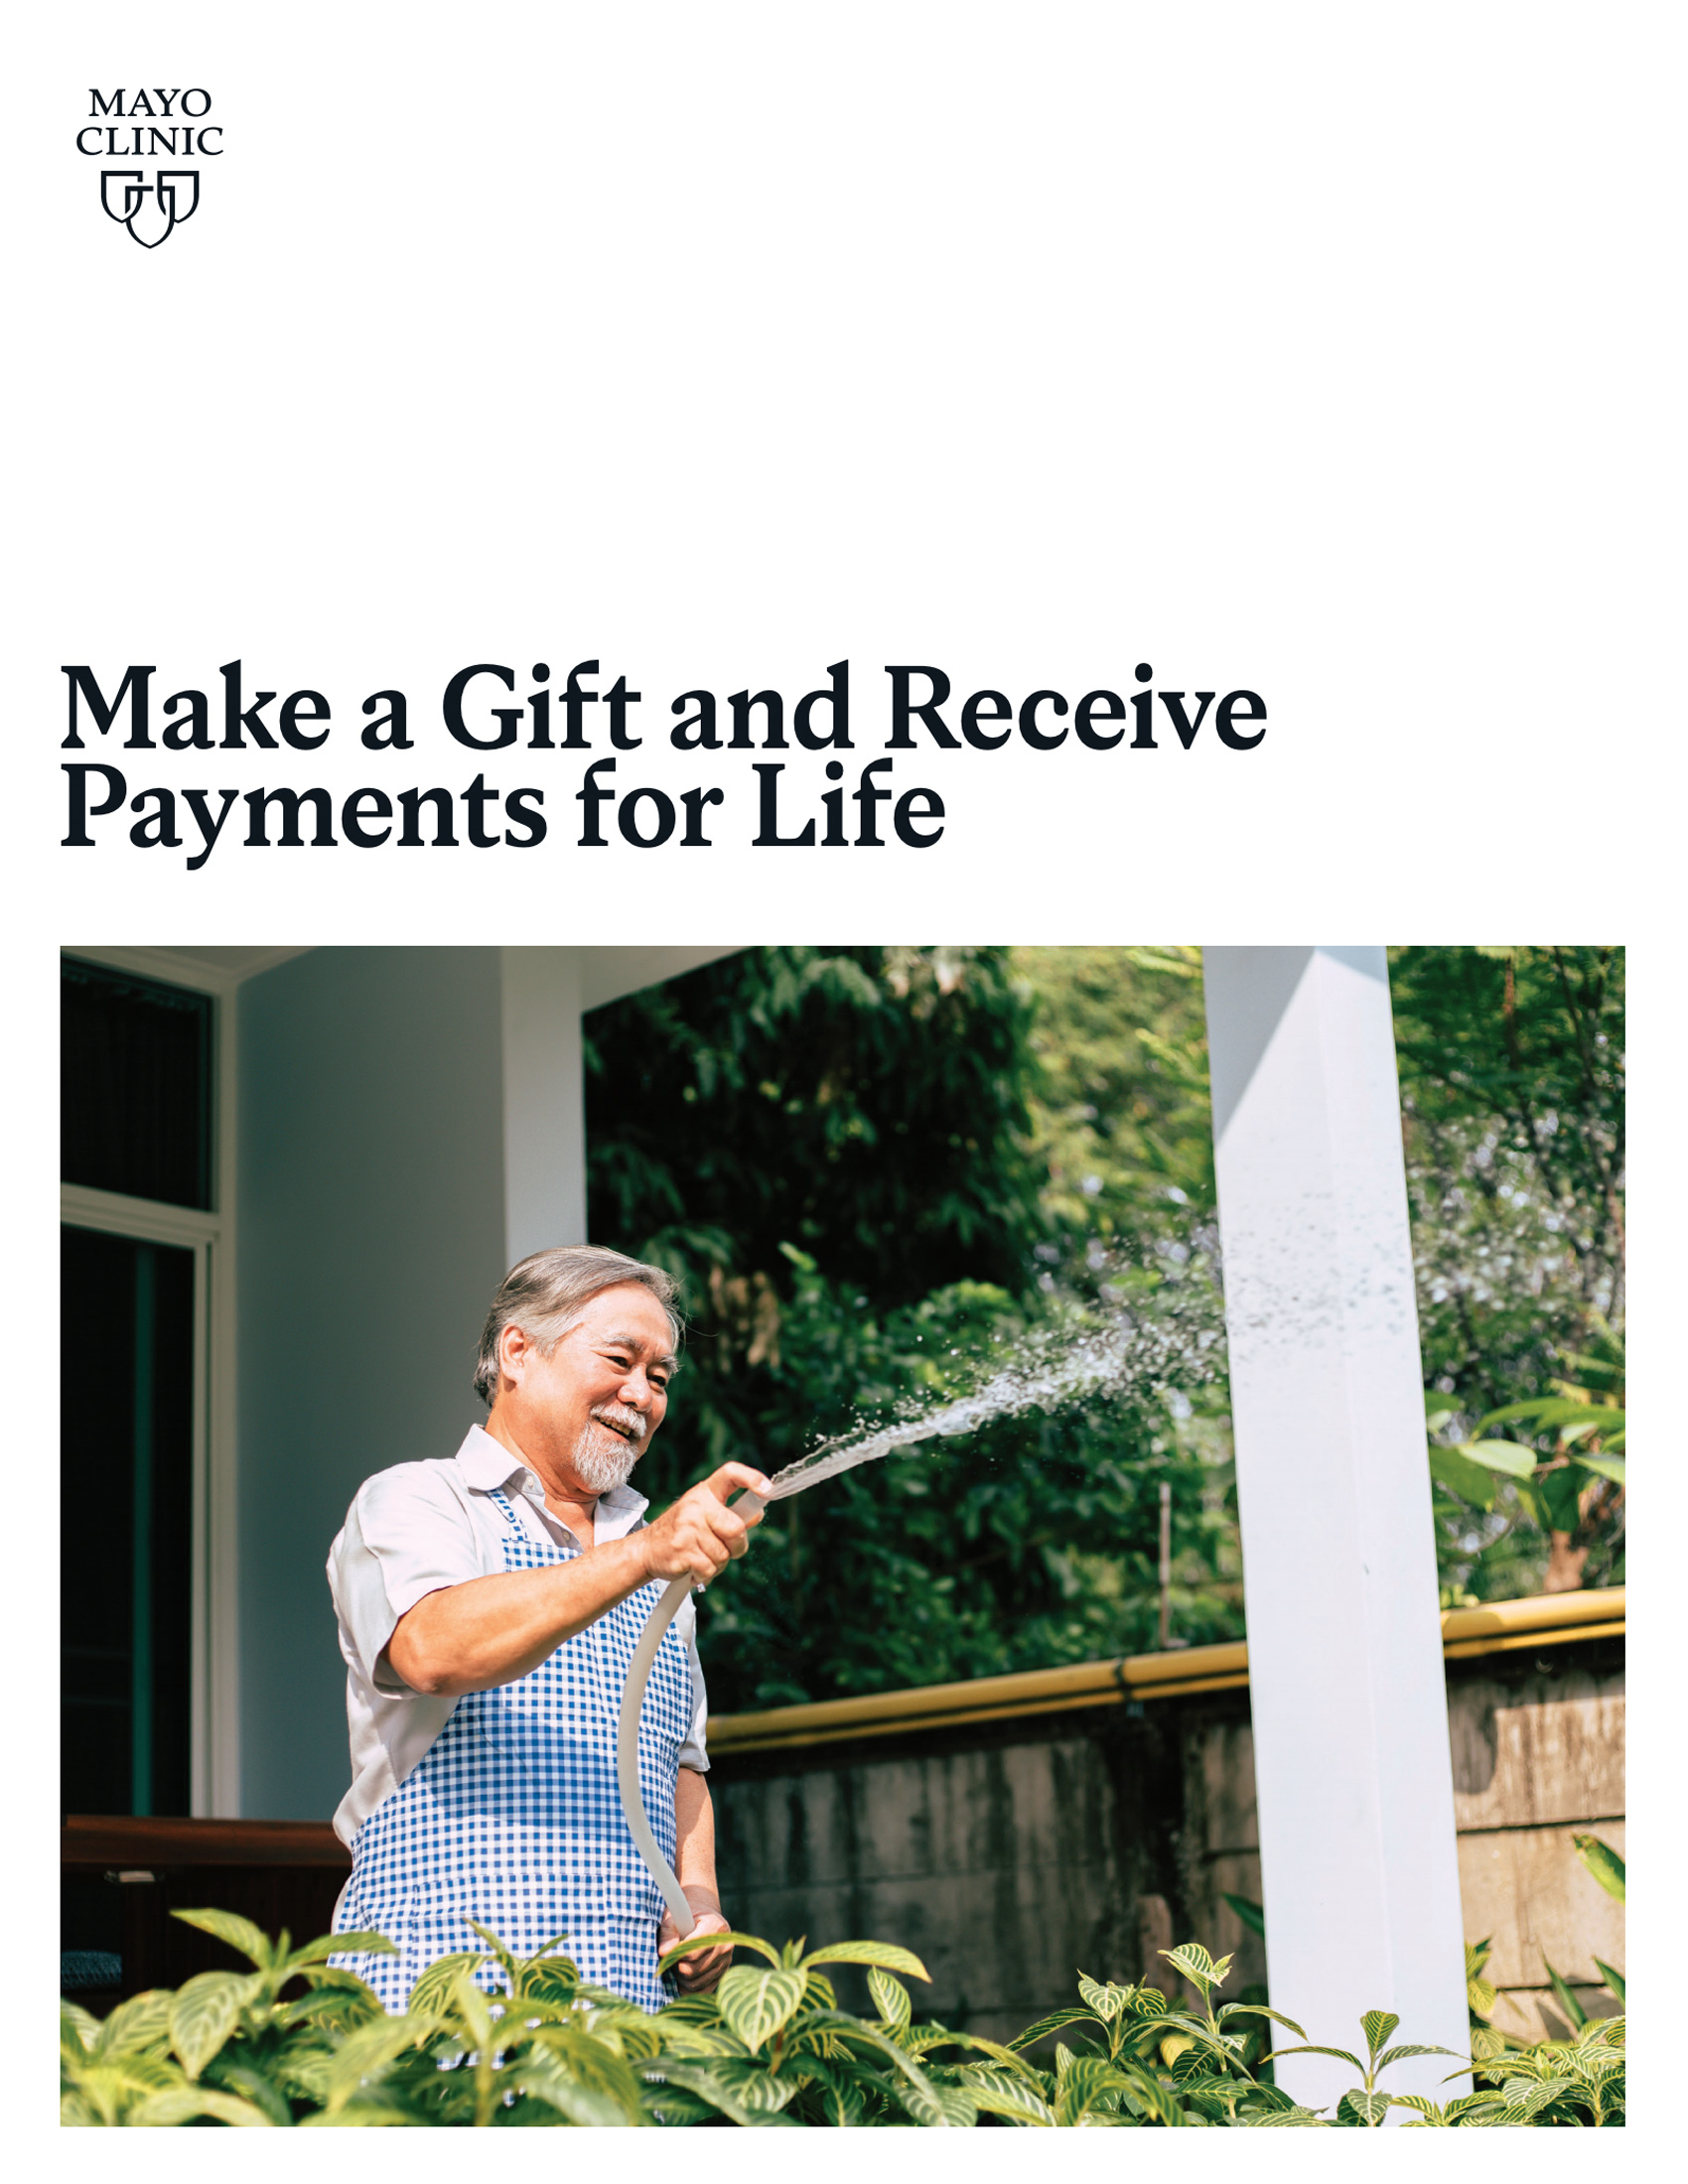 Make a Gift and Receive Payments for Life